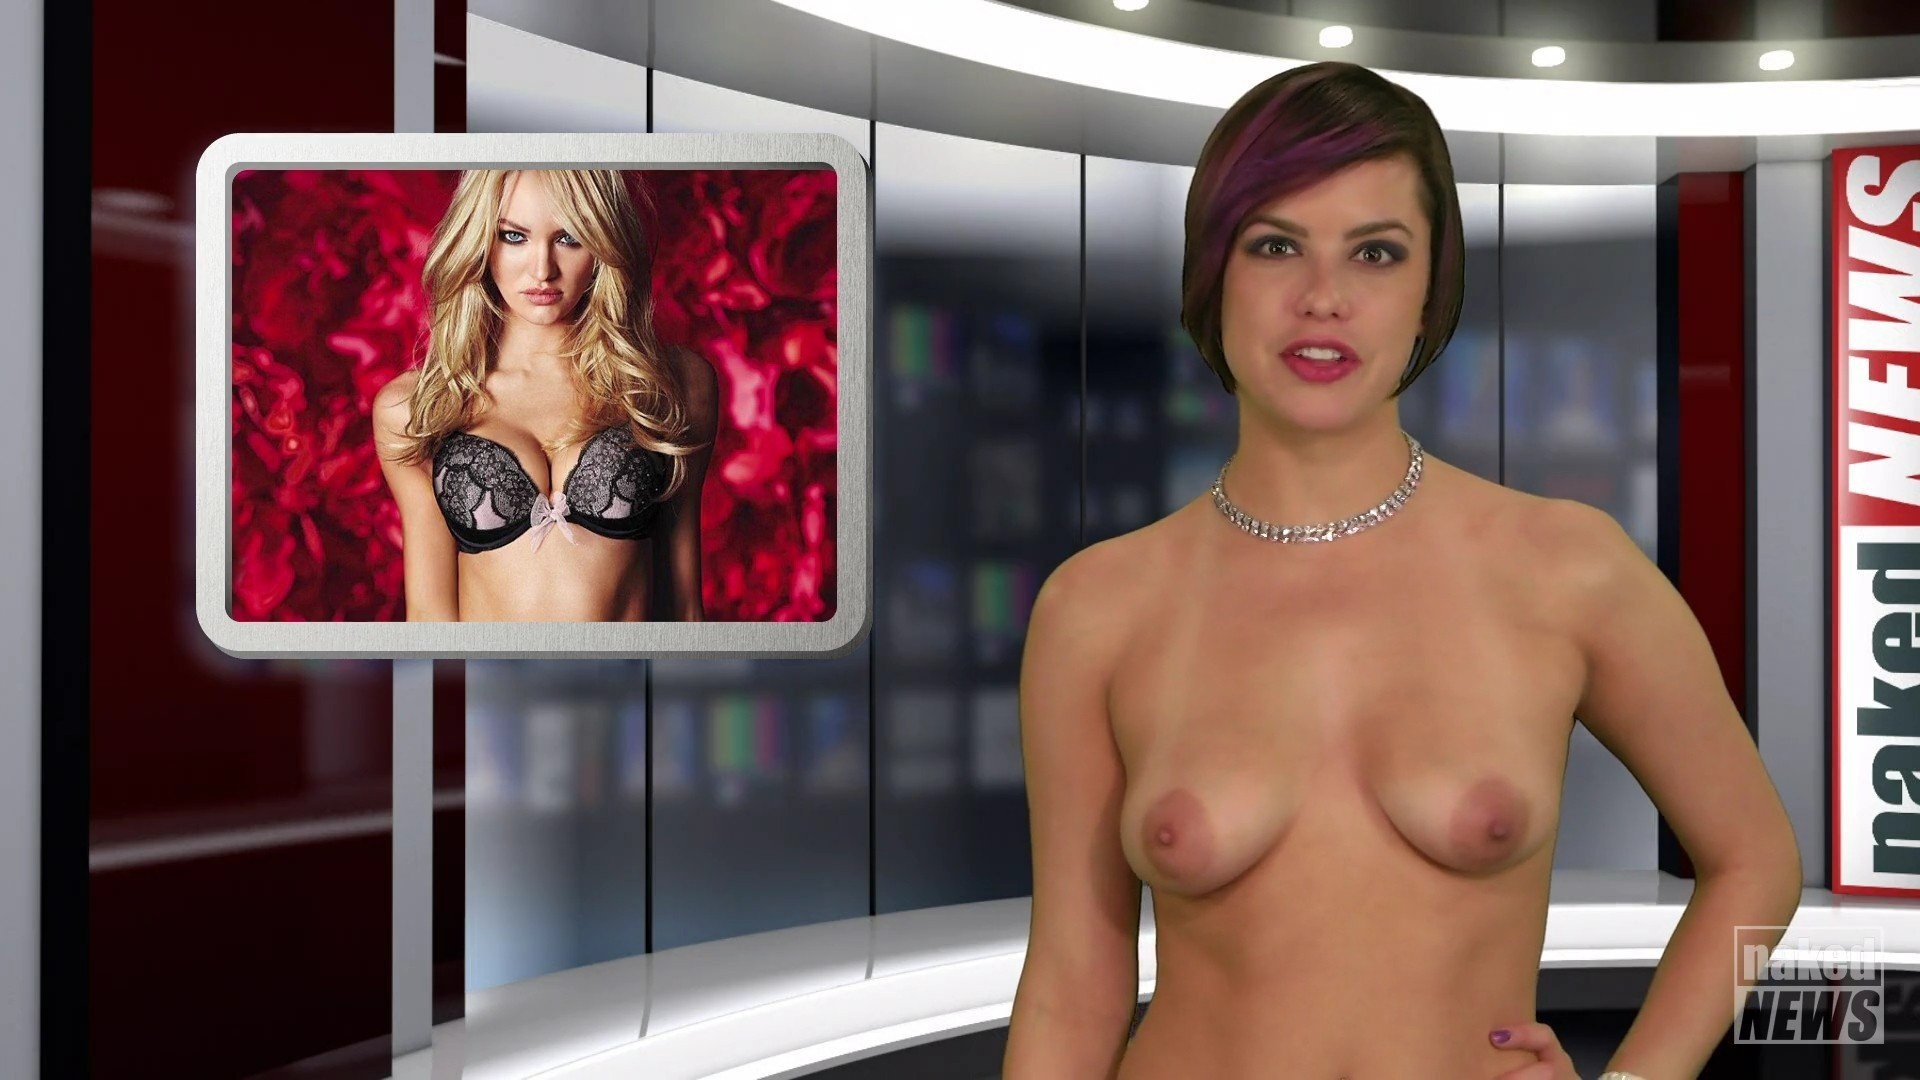 Local Tv Reporter Accidentally Shows Naked Husband During Broadcast